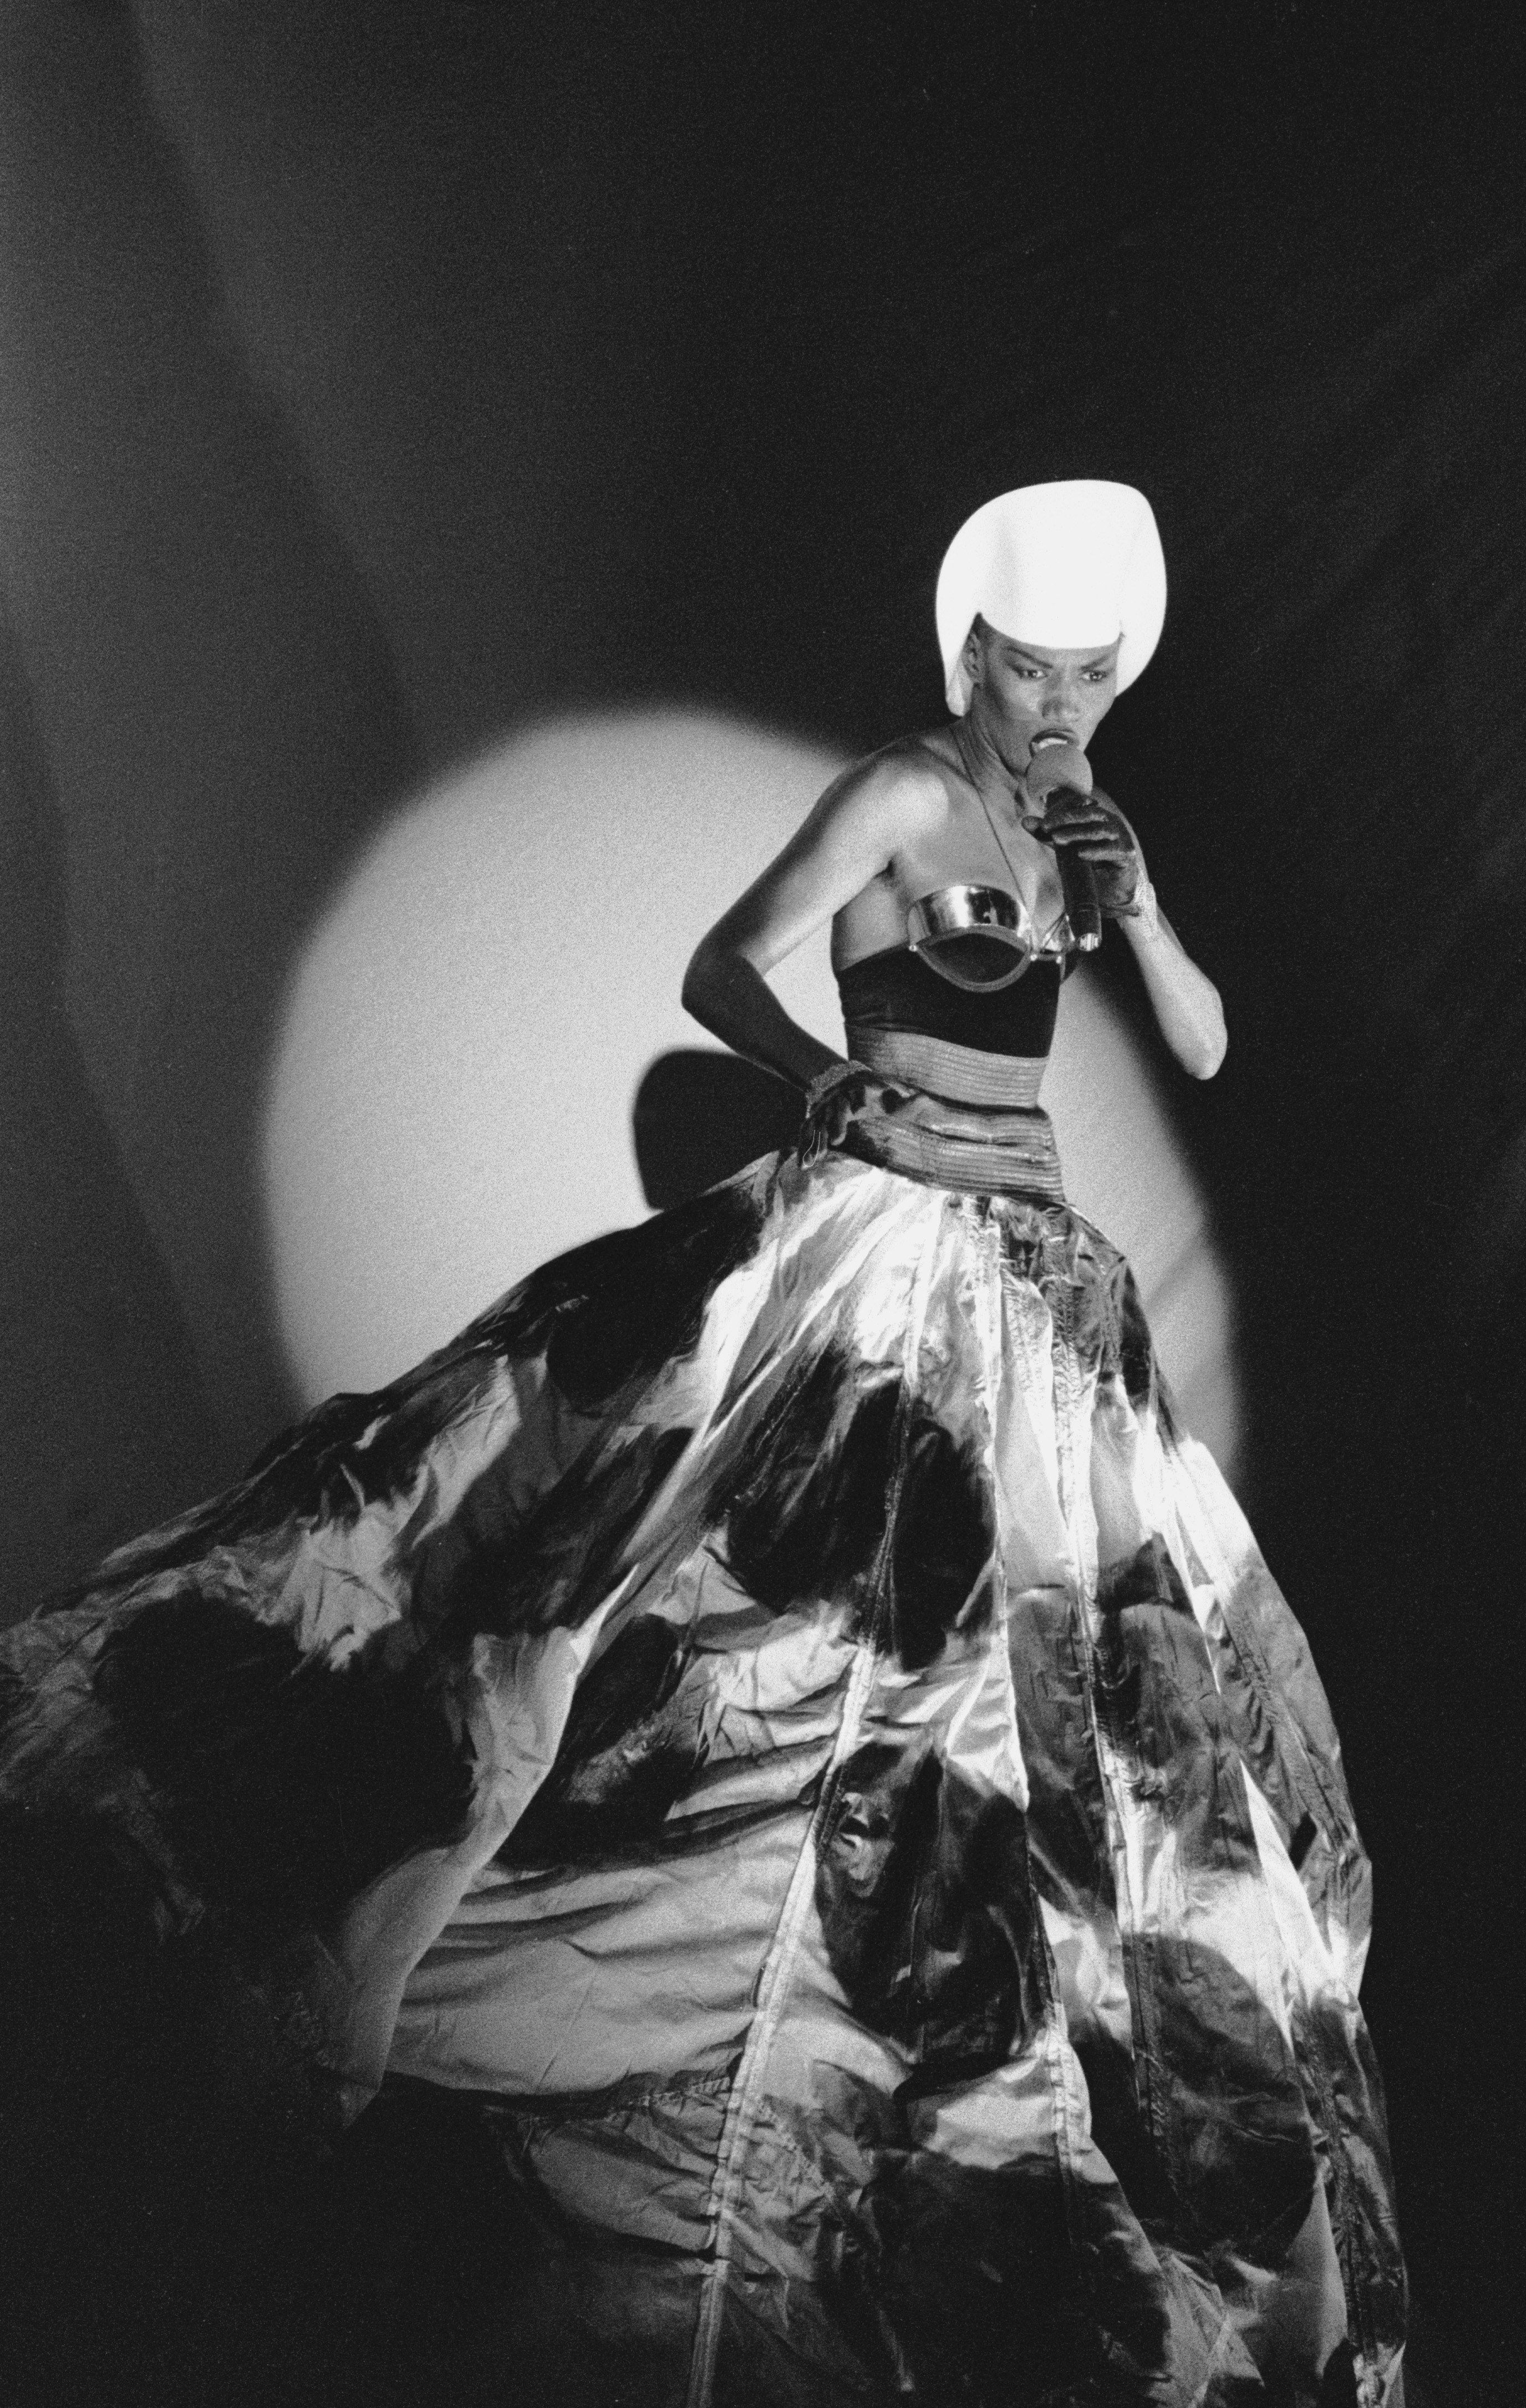 Grace Jones Most Iconic Looks, From Studio 54 To The